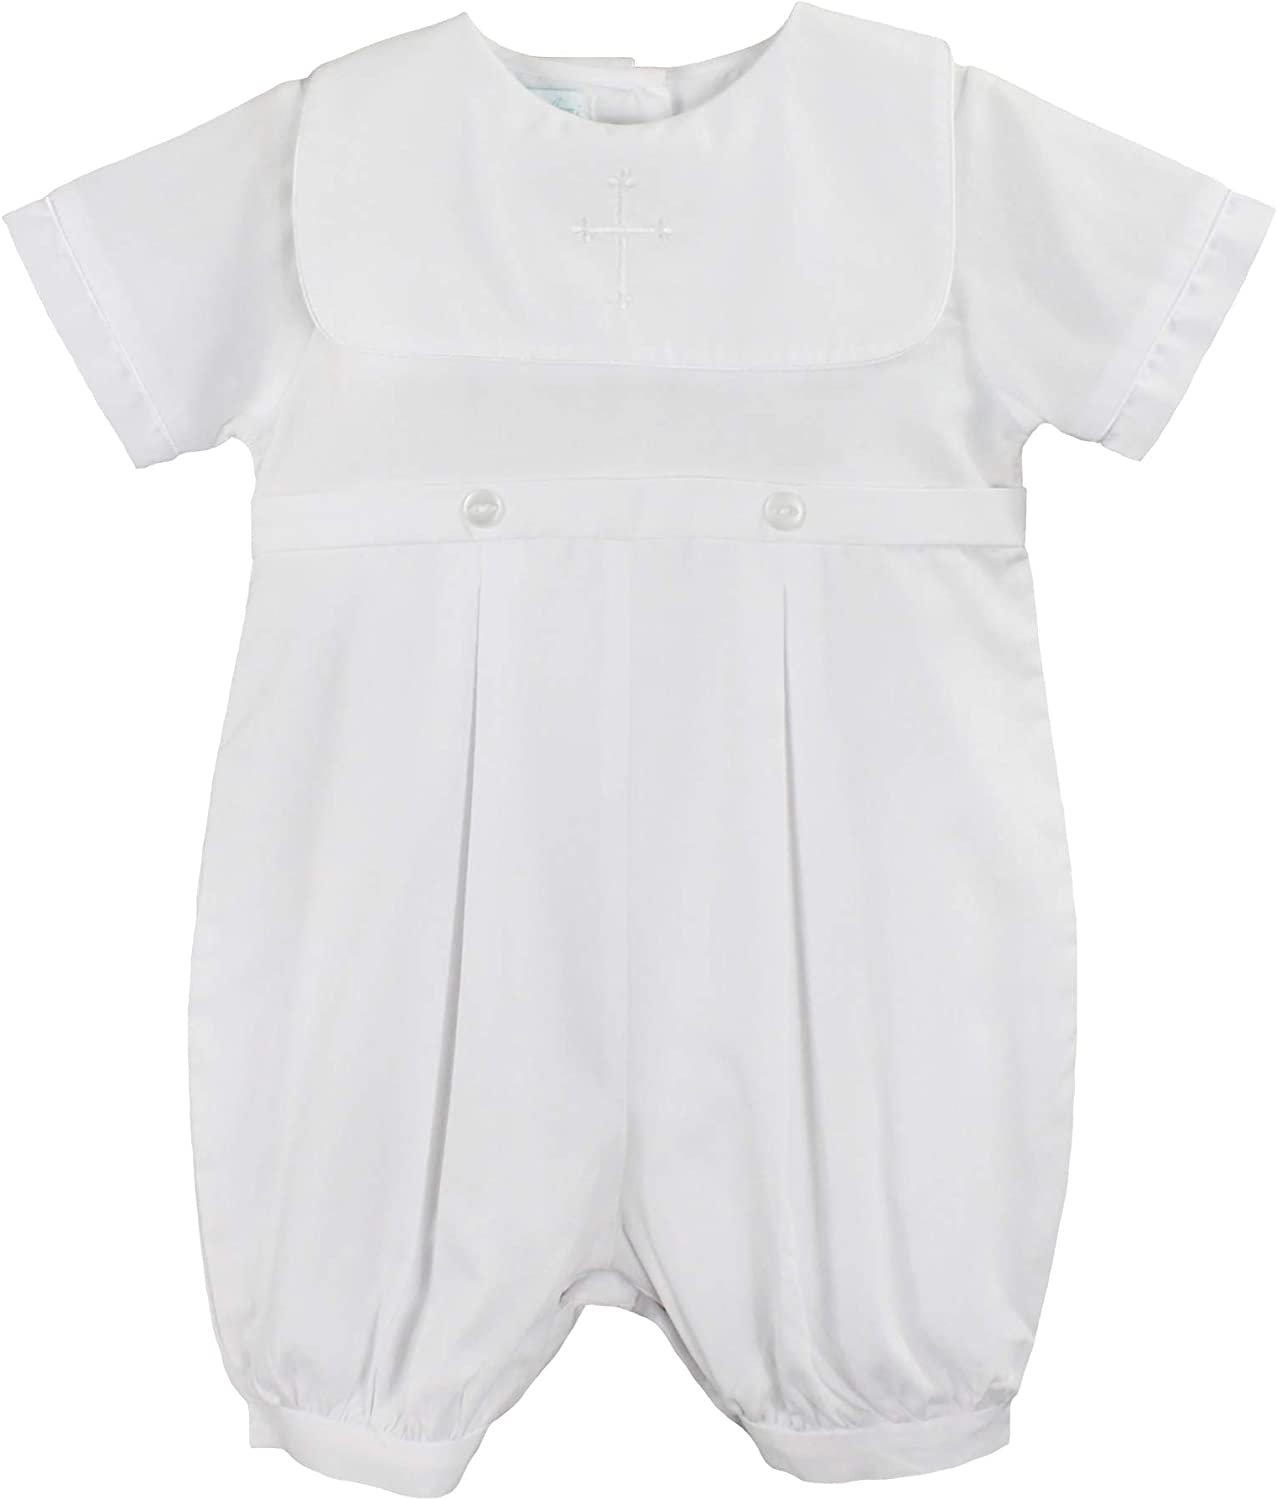 Petit Ami Baby Boys Romper White Smocked NWT Infant Size 3m-24 months